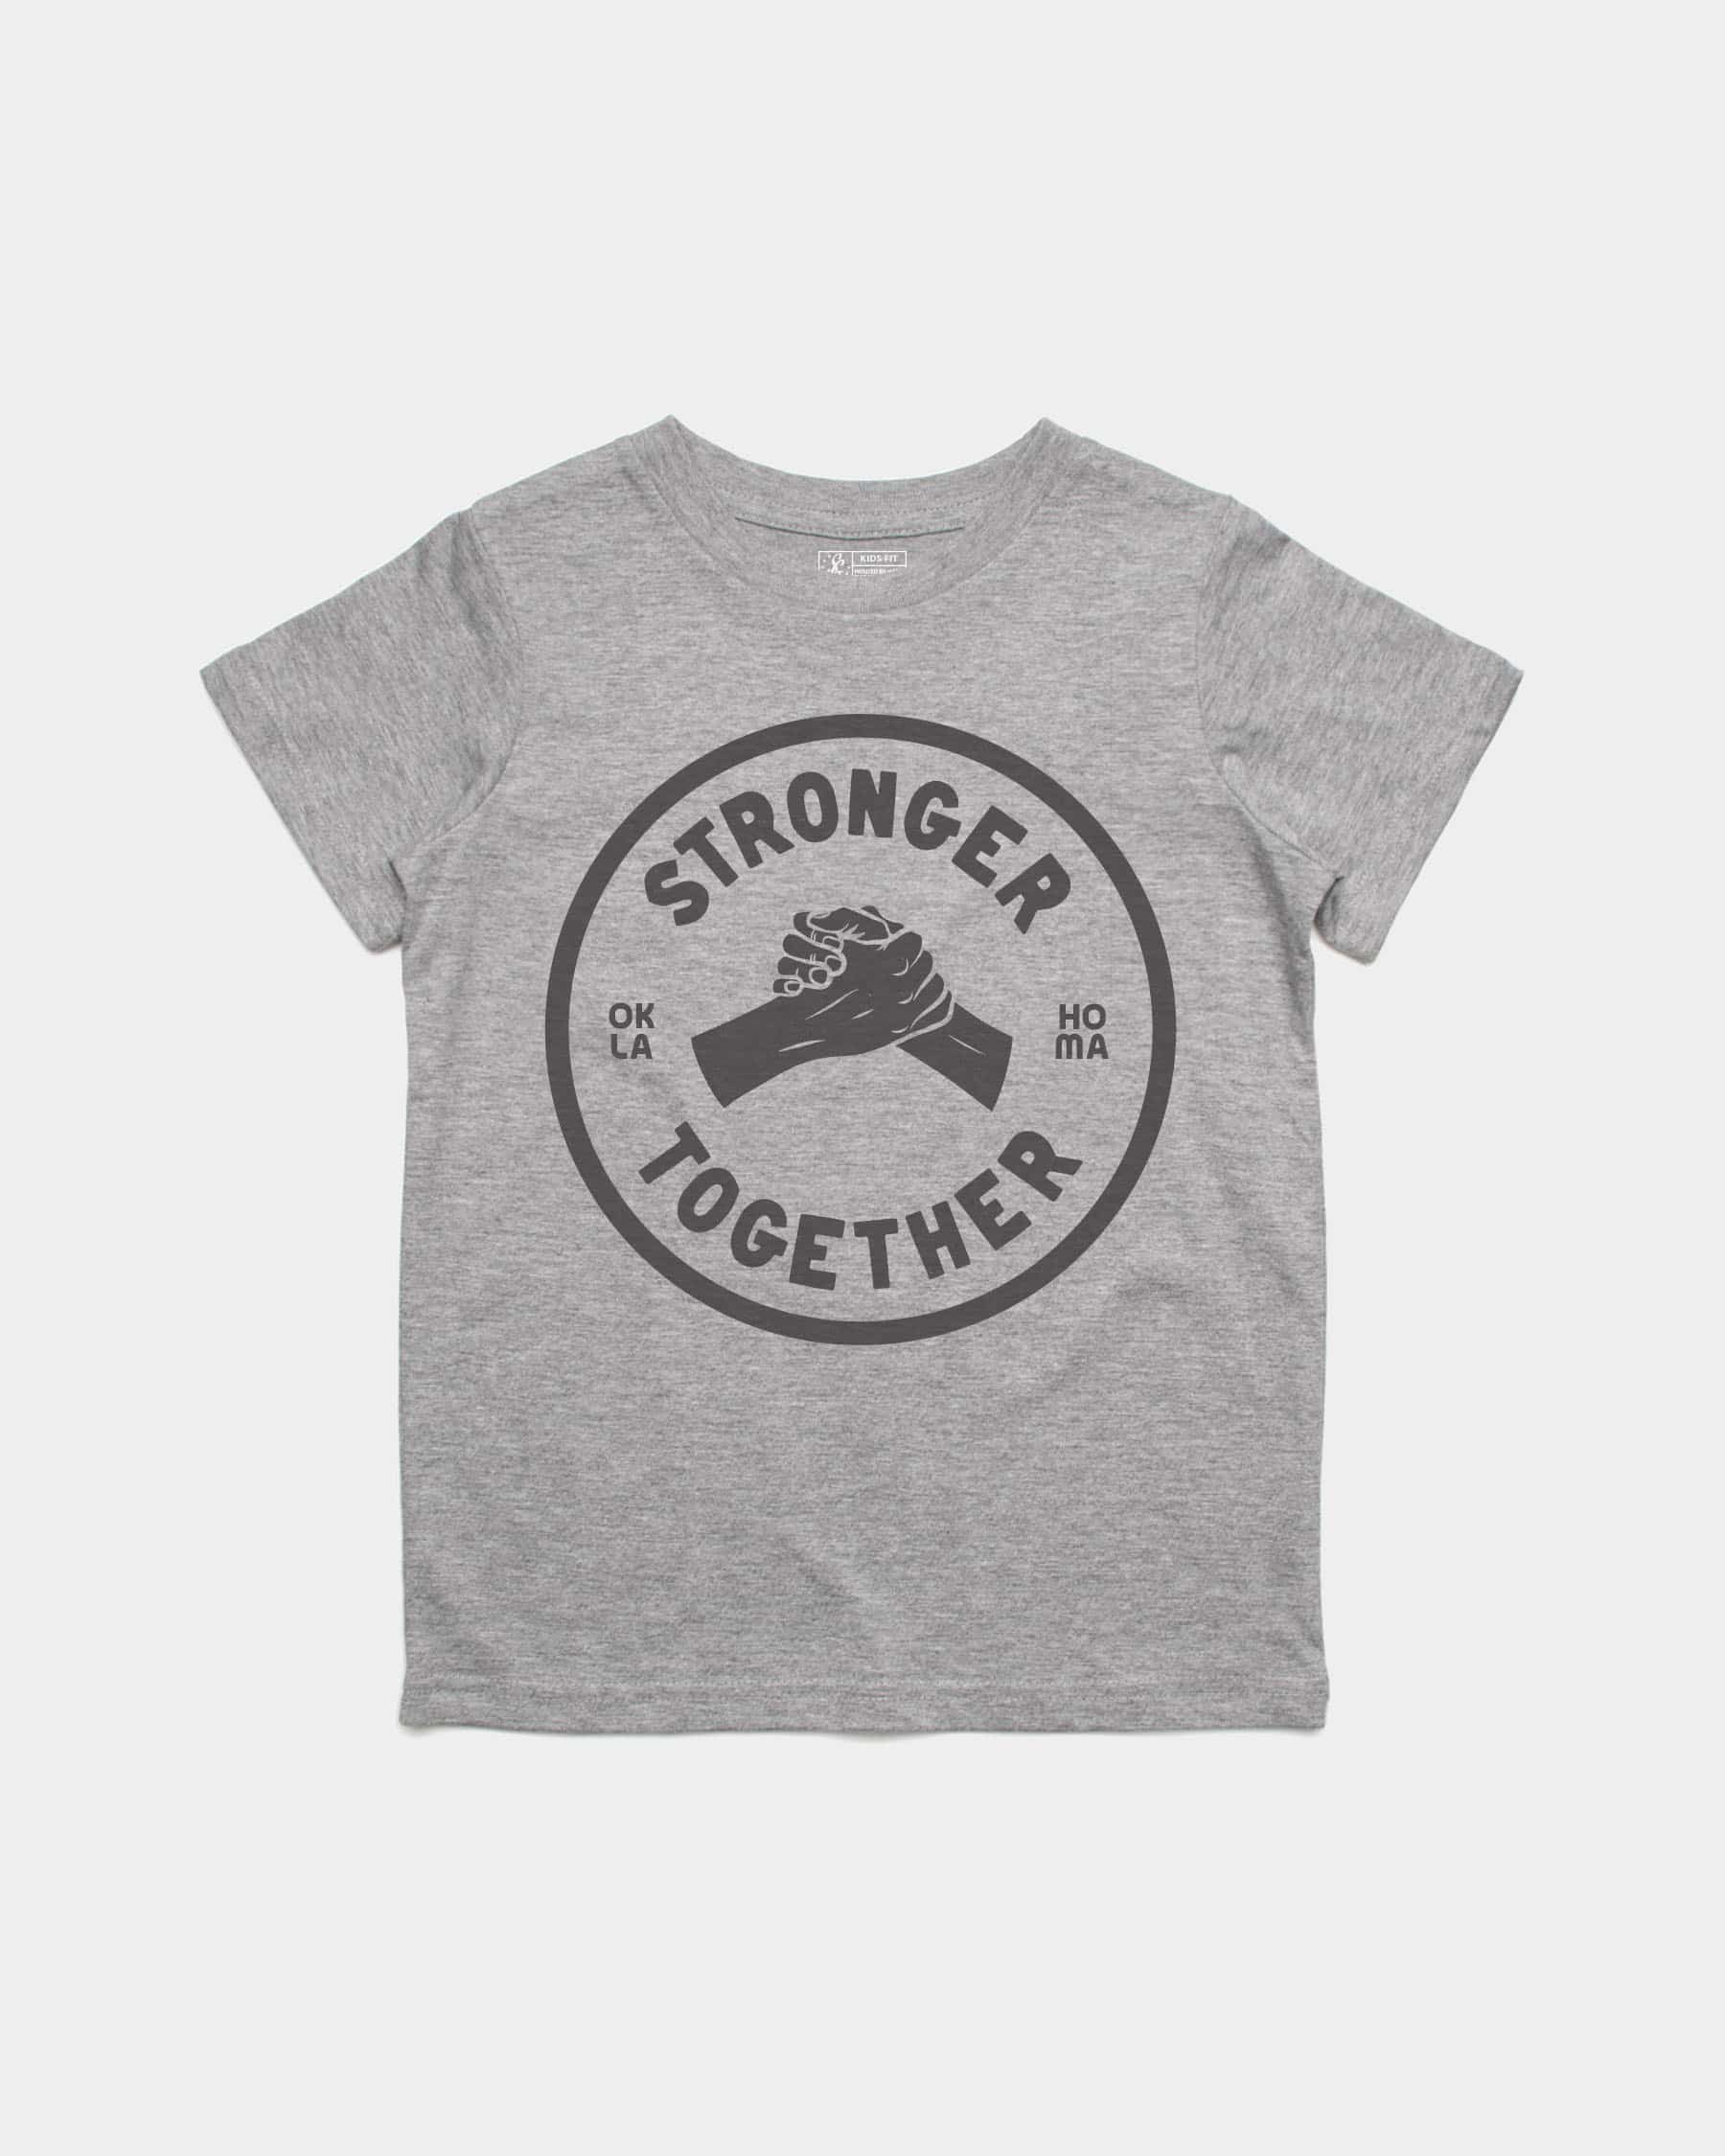 SOLIDARITY SERIES No. 1: Stronger Together Kids Tee